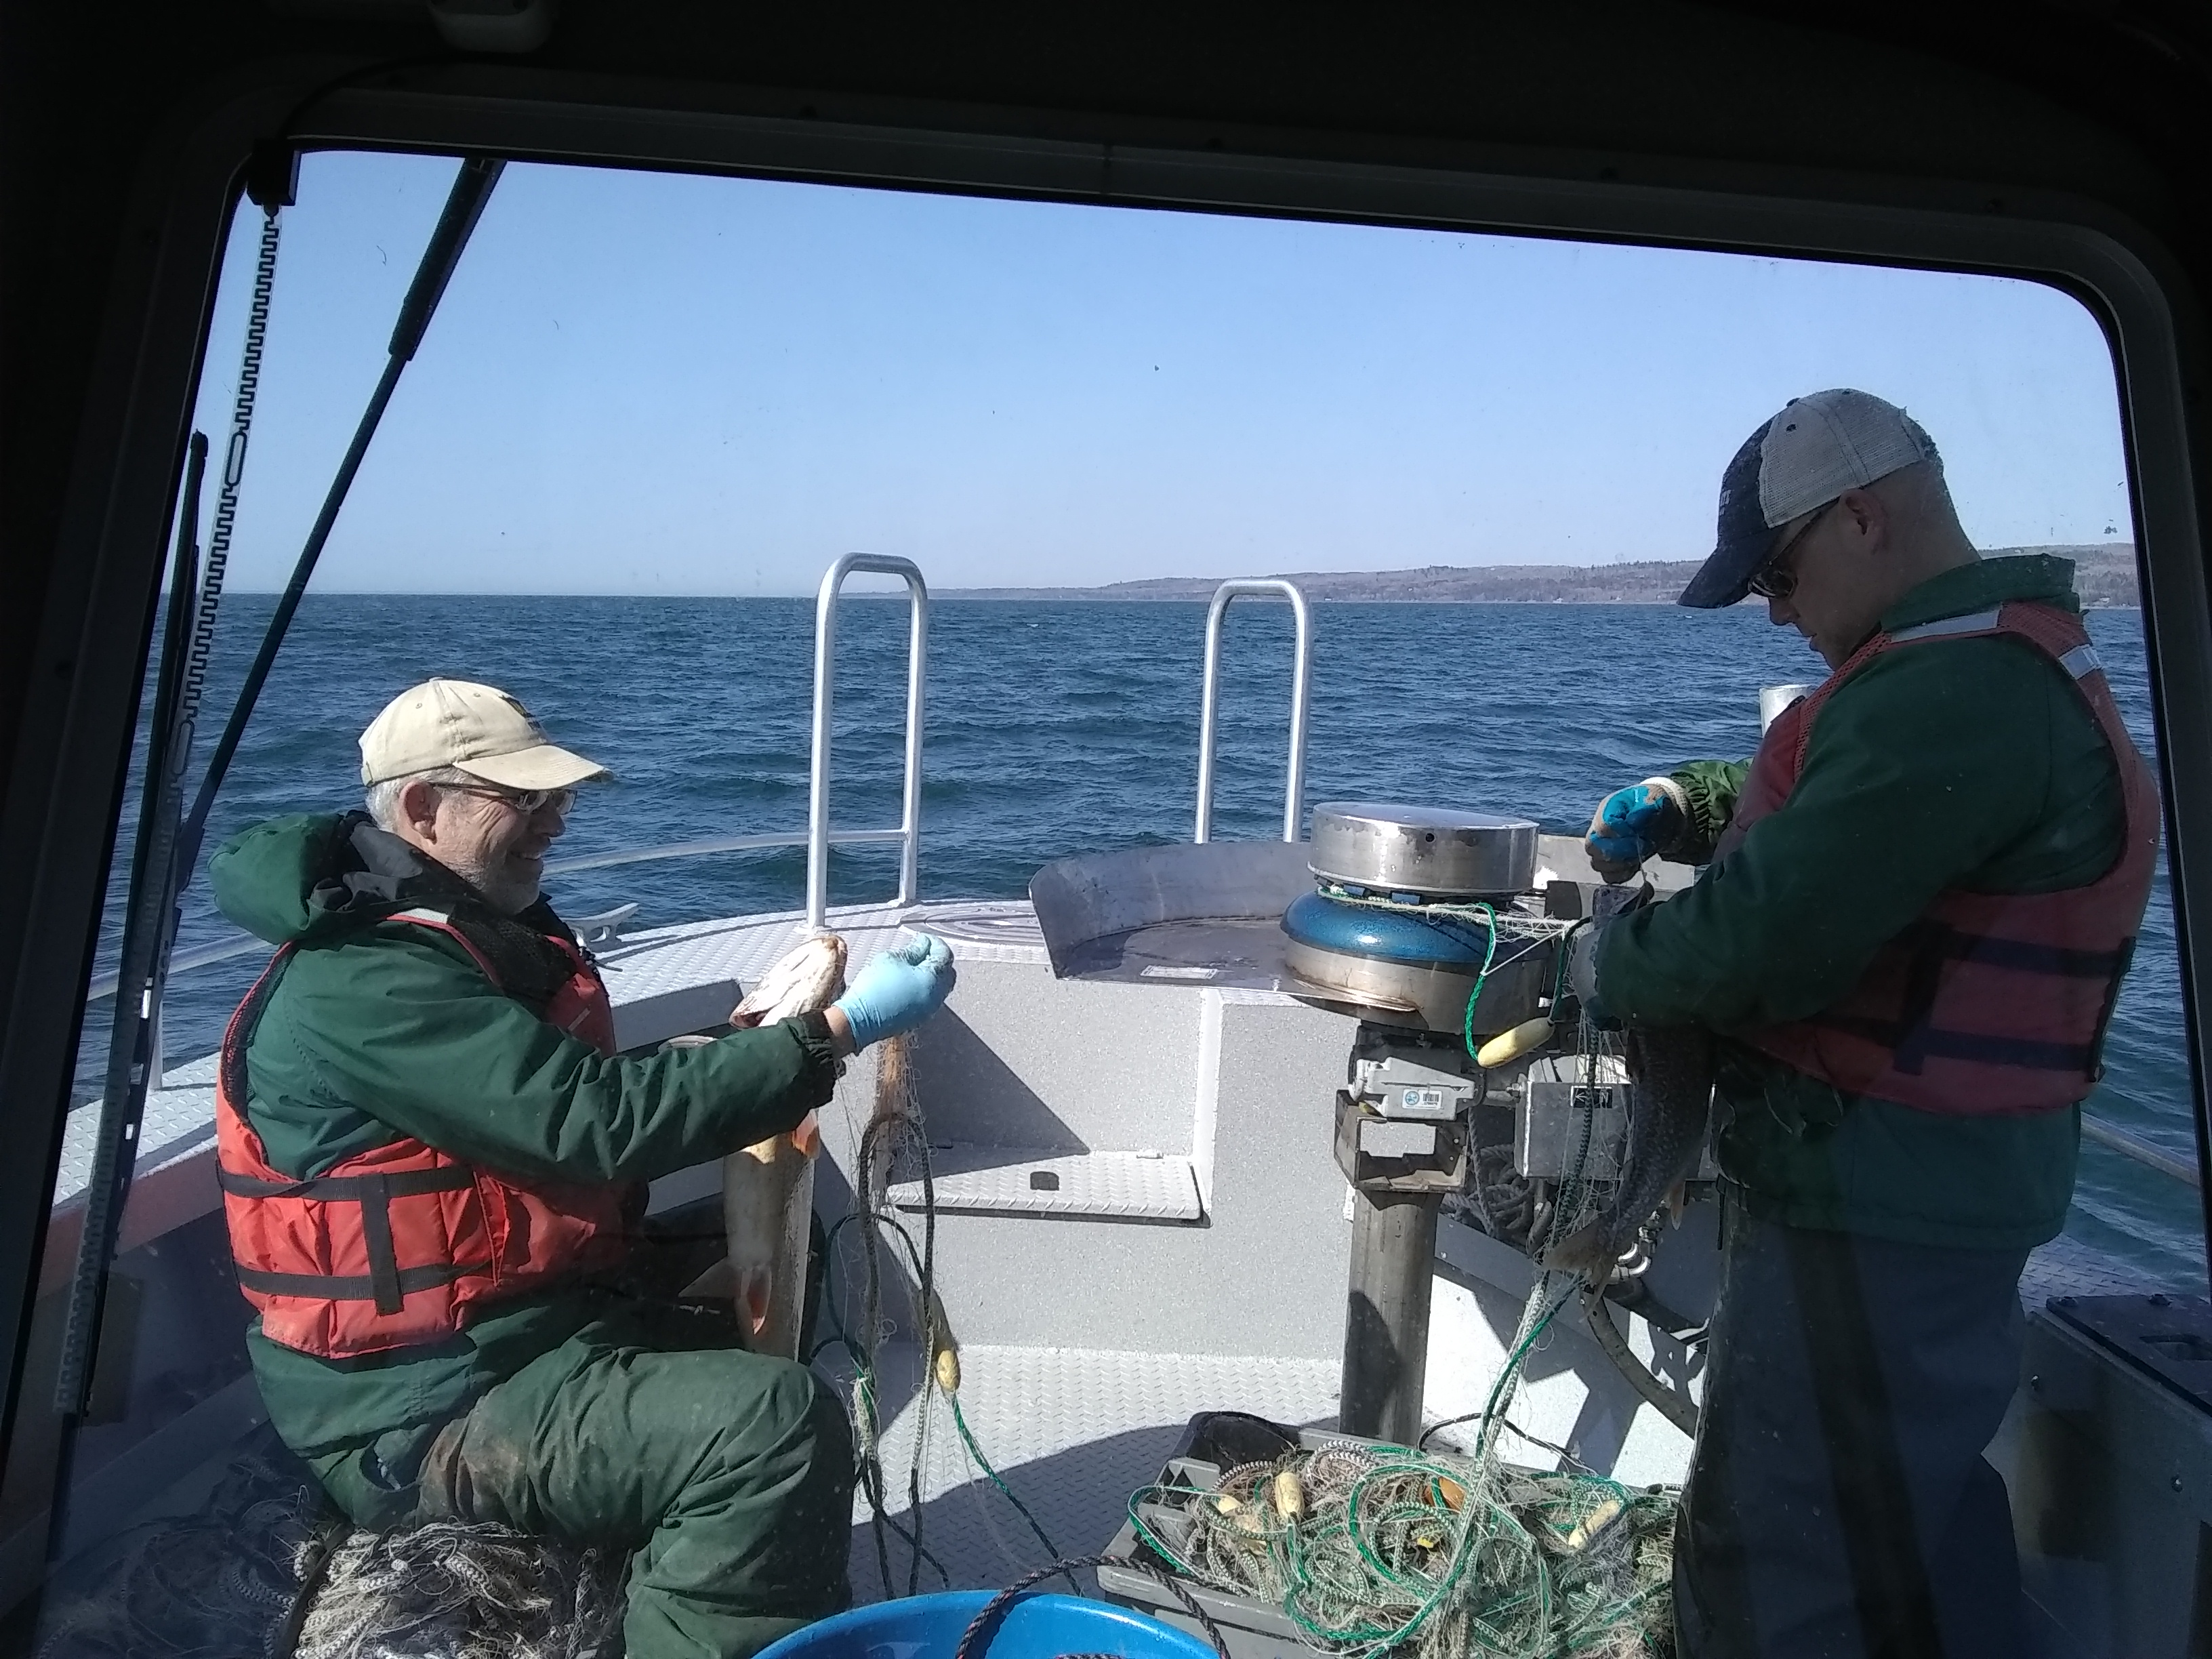 Cory Goldsworthy (right) urges that whilst the program has been a success, vigilance both with fishing quotas and lamprey treatment is necessary to maintain that success